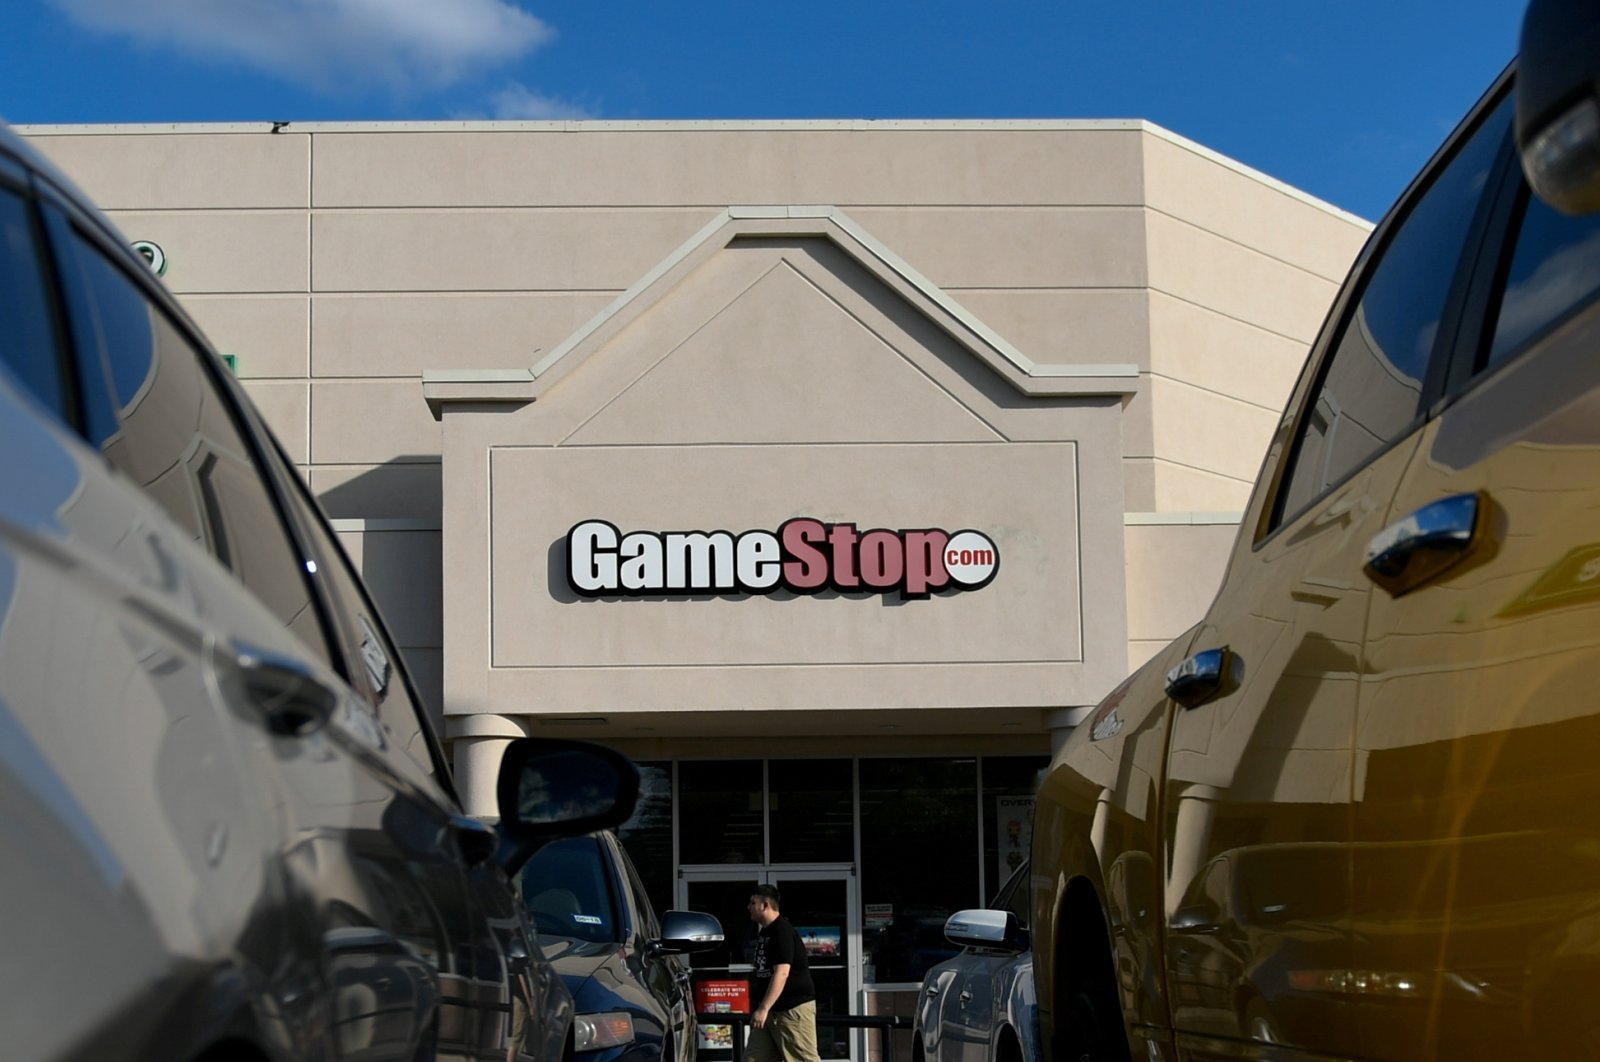 A man walks past a GameStop store in Austin, Texas, U.S., on March 26, 2018. (Reuters Photo)